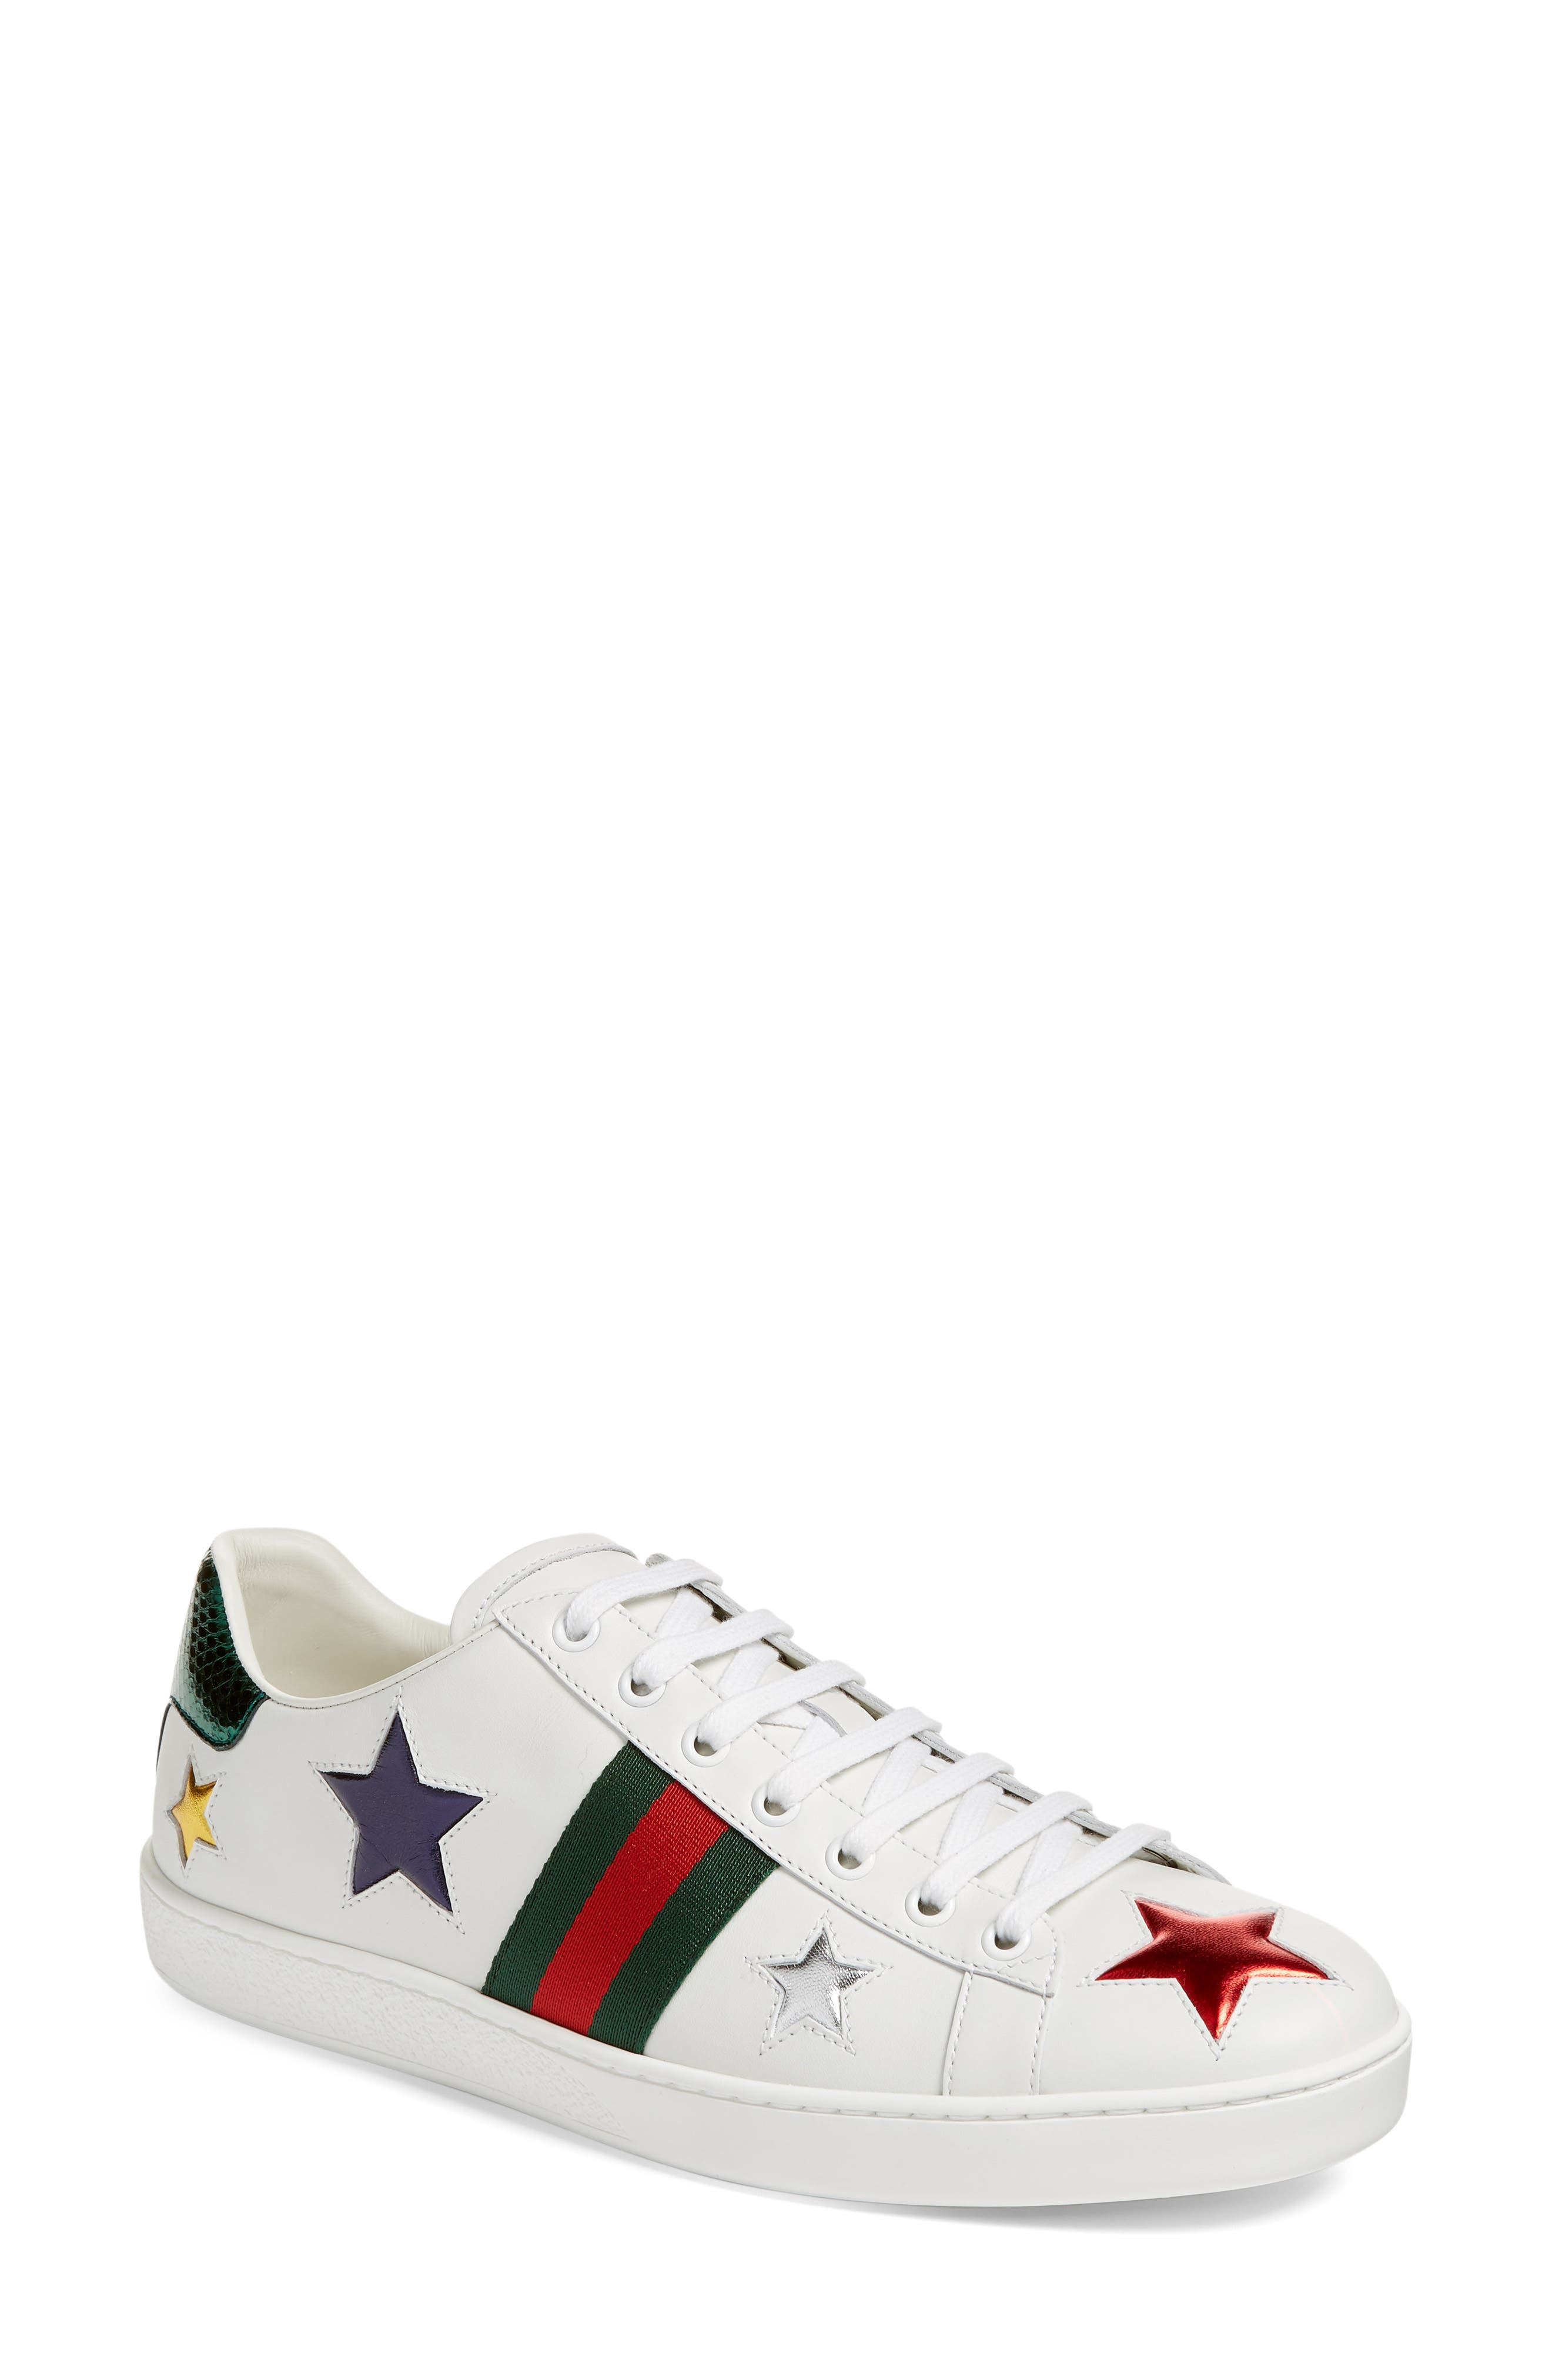 GUCCI, New Ace Star Sneaker, Main thumbnail 1, color, WHITE MULTI